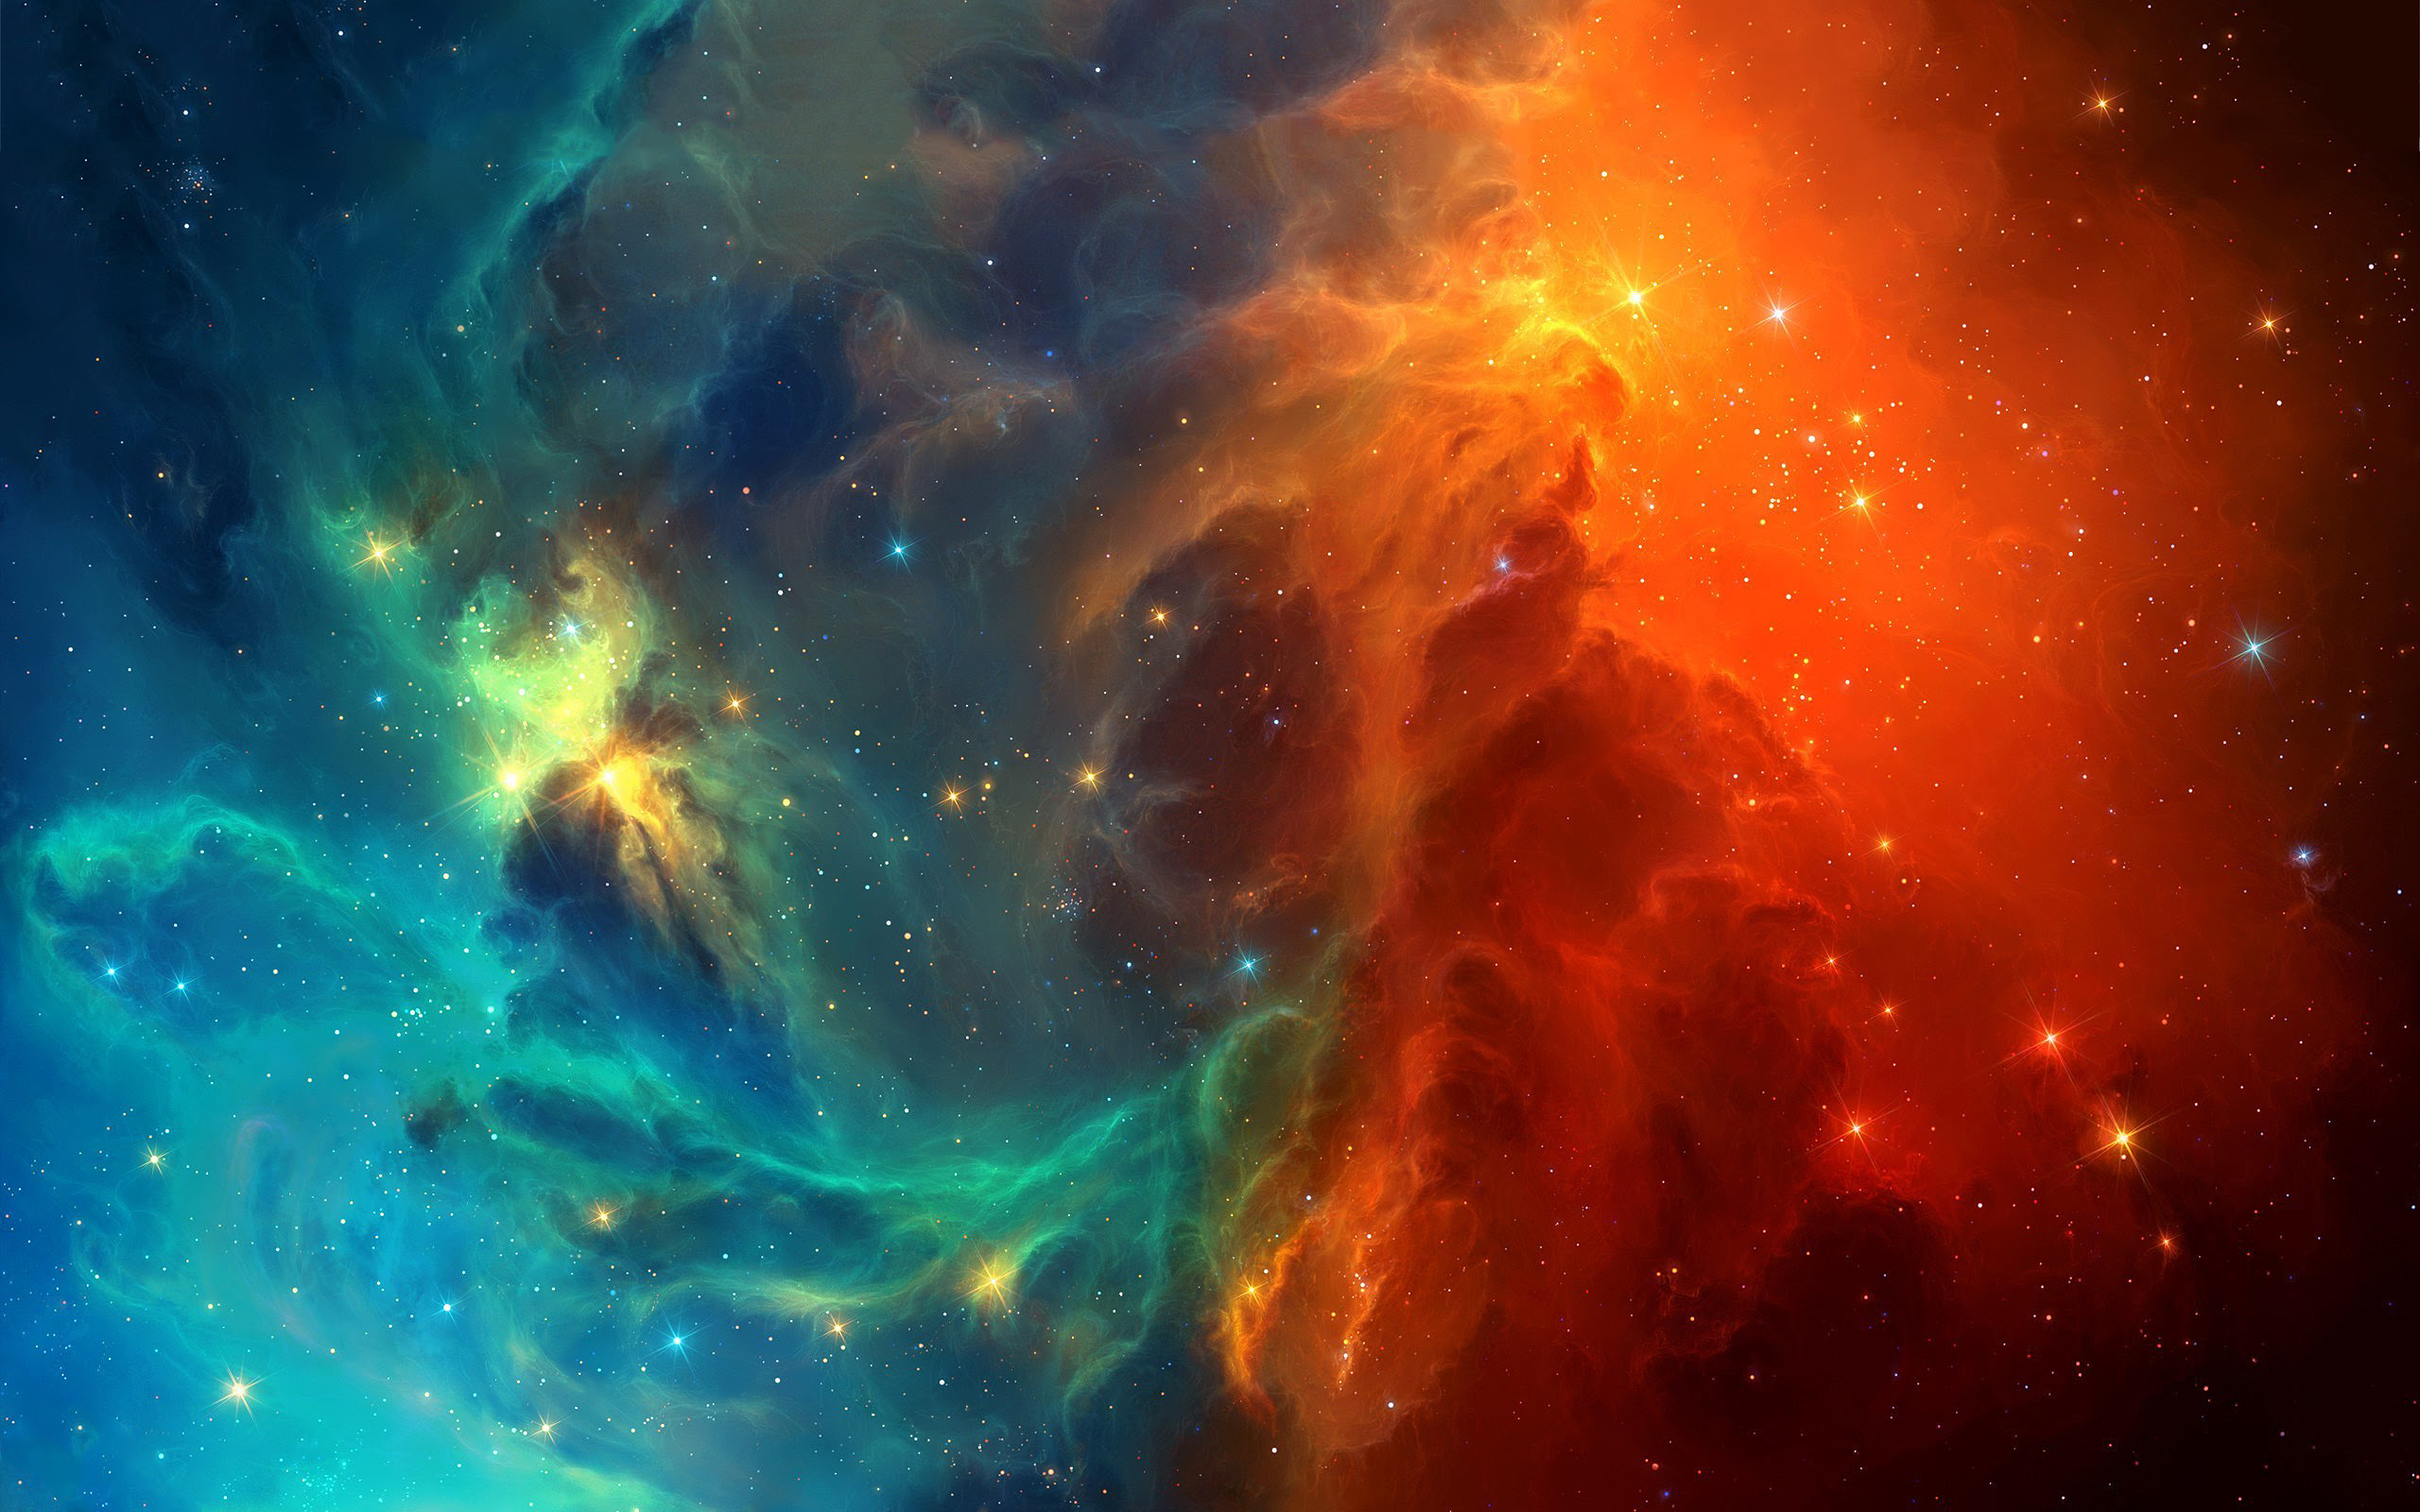 Hd 1920x1080 Wallpaper Space For Six